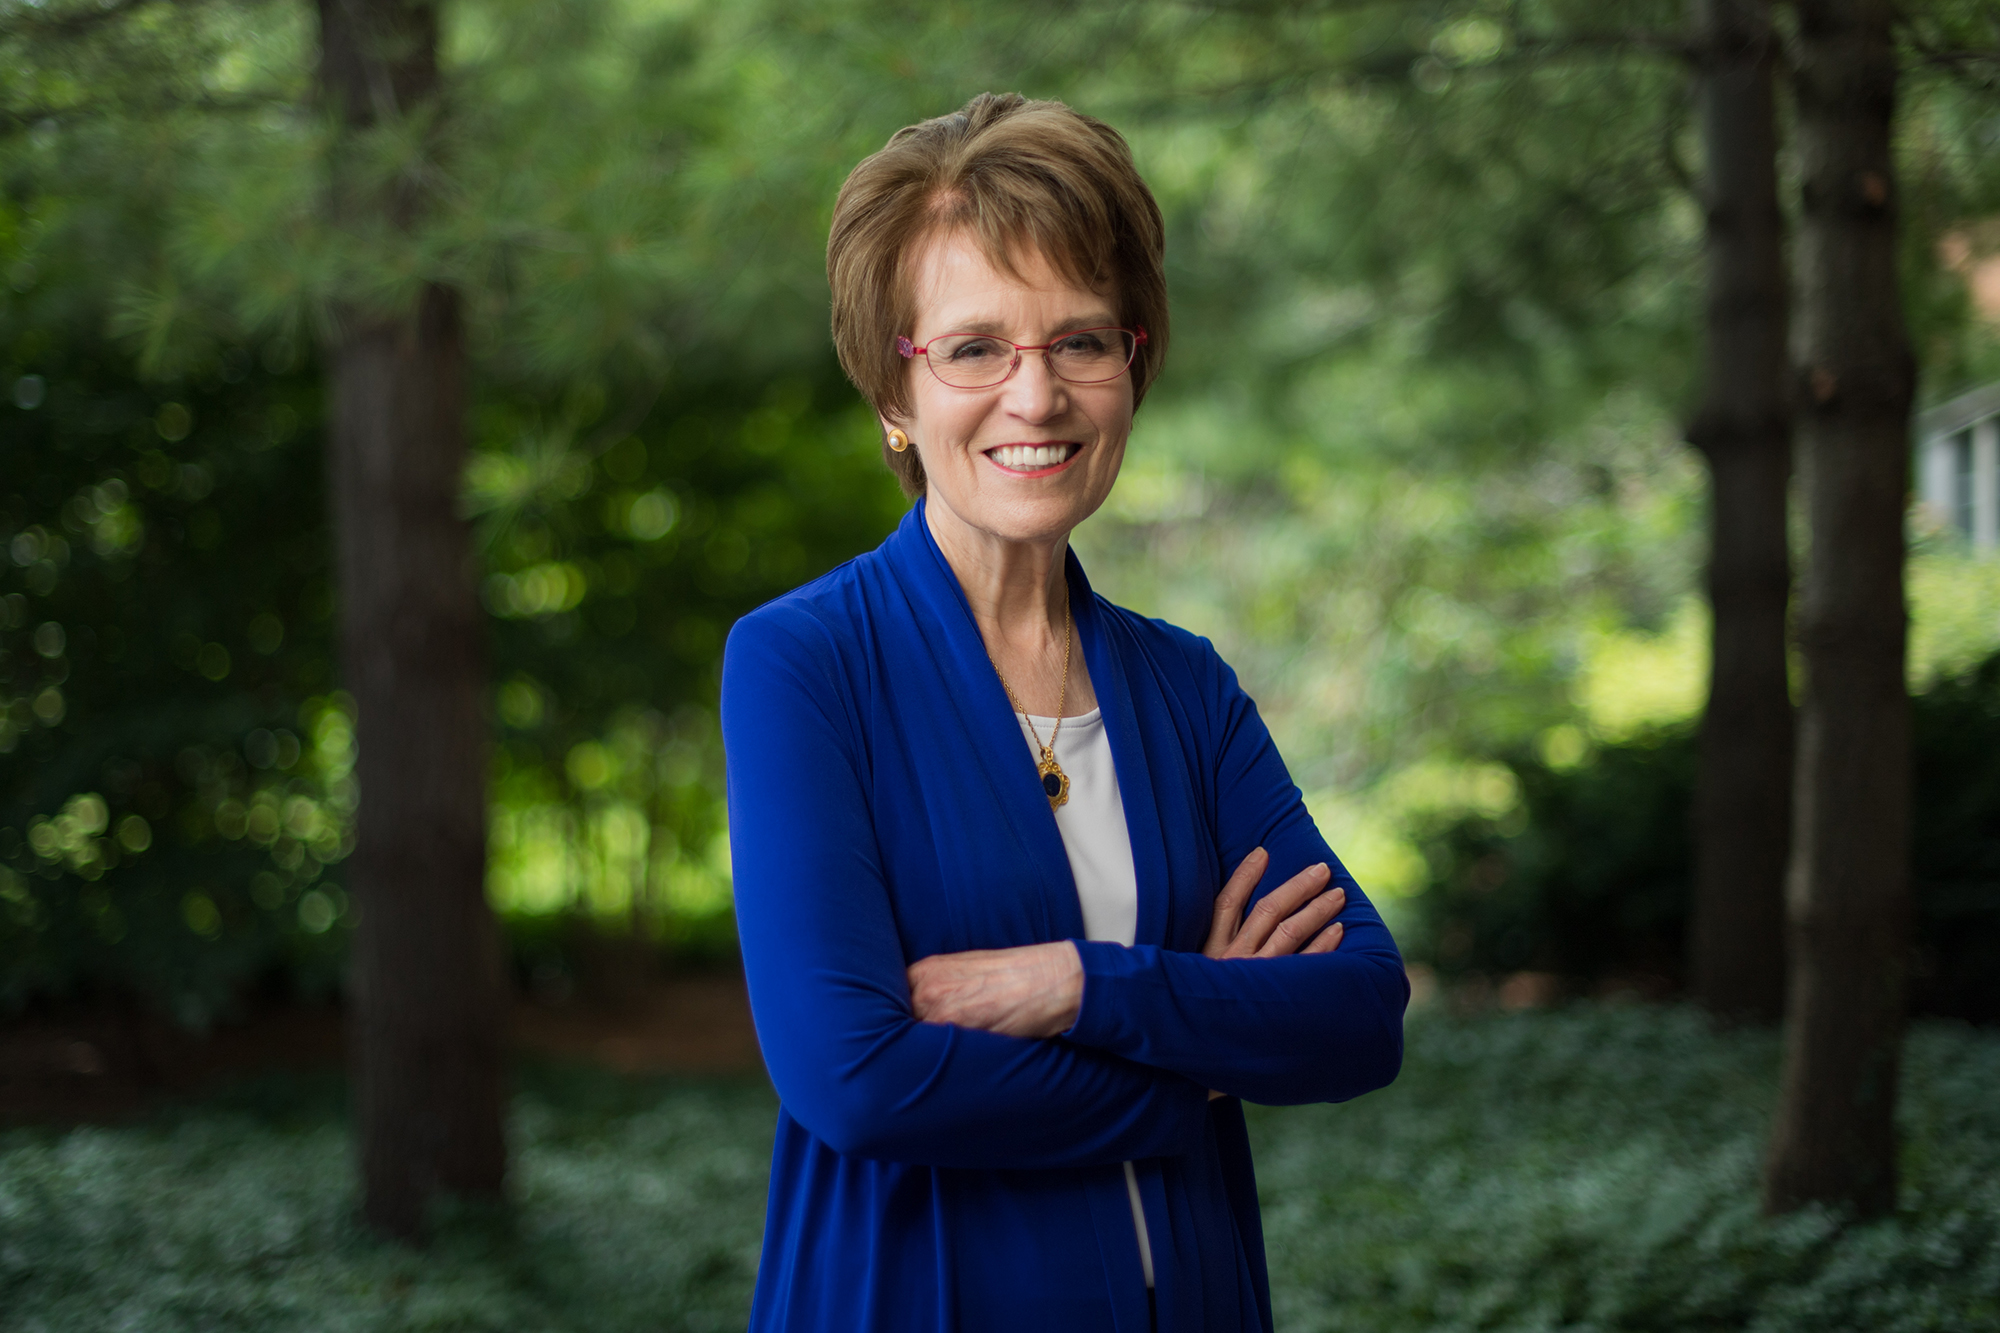 Former University of Iowa president Mary Sue Coleman posing outdoors for a portrait